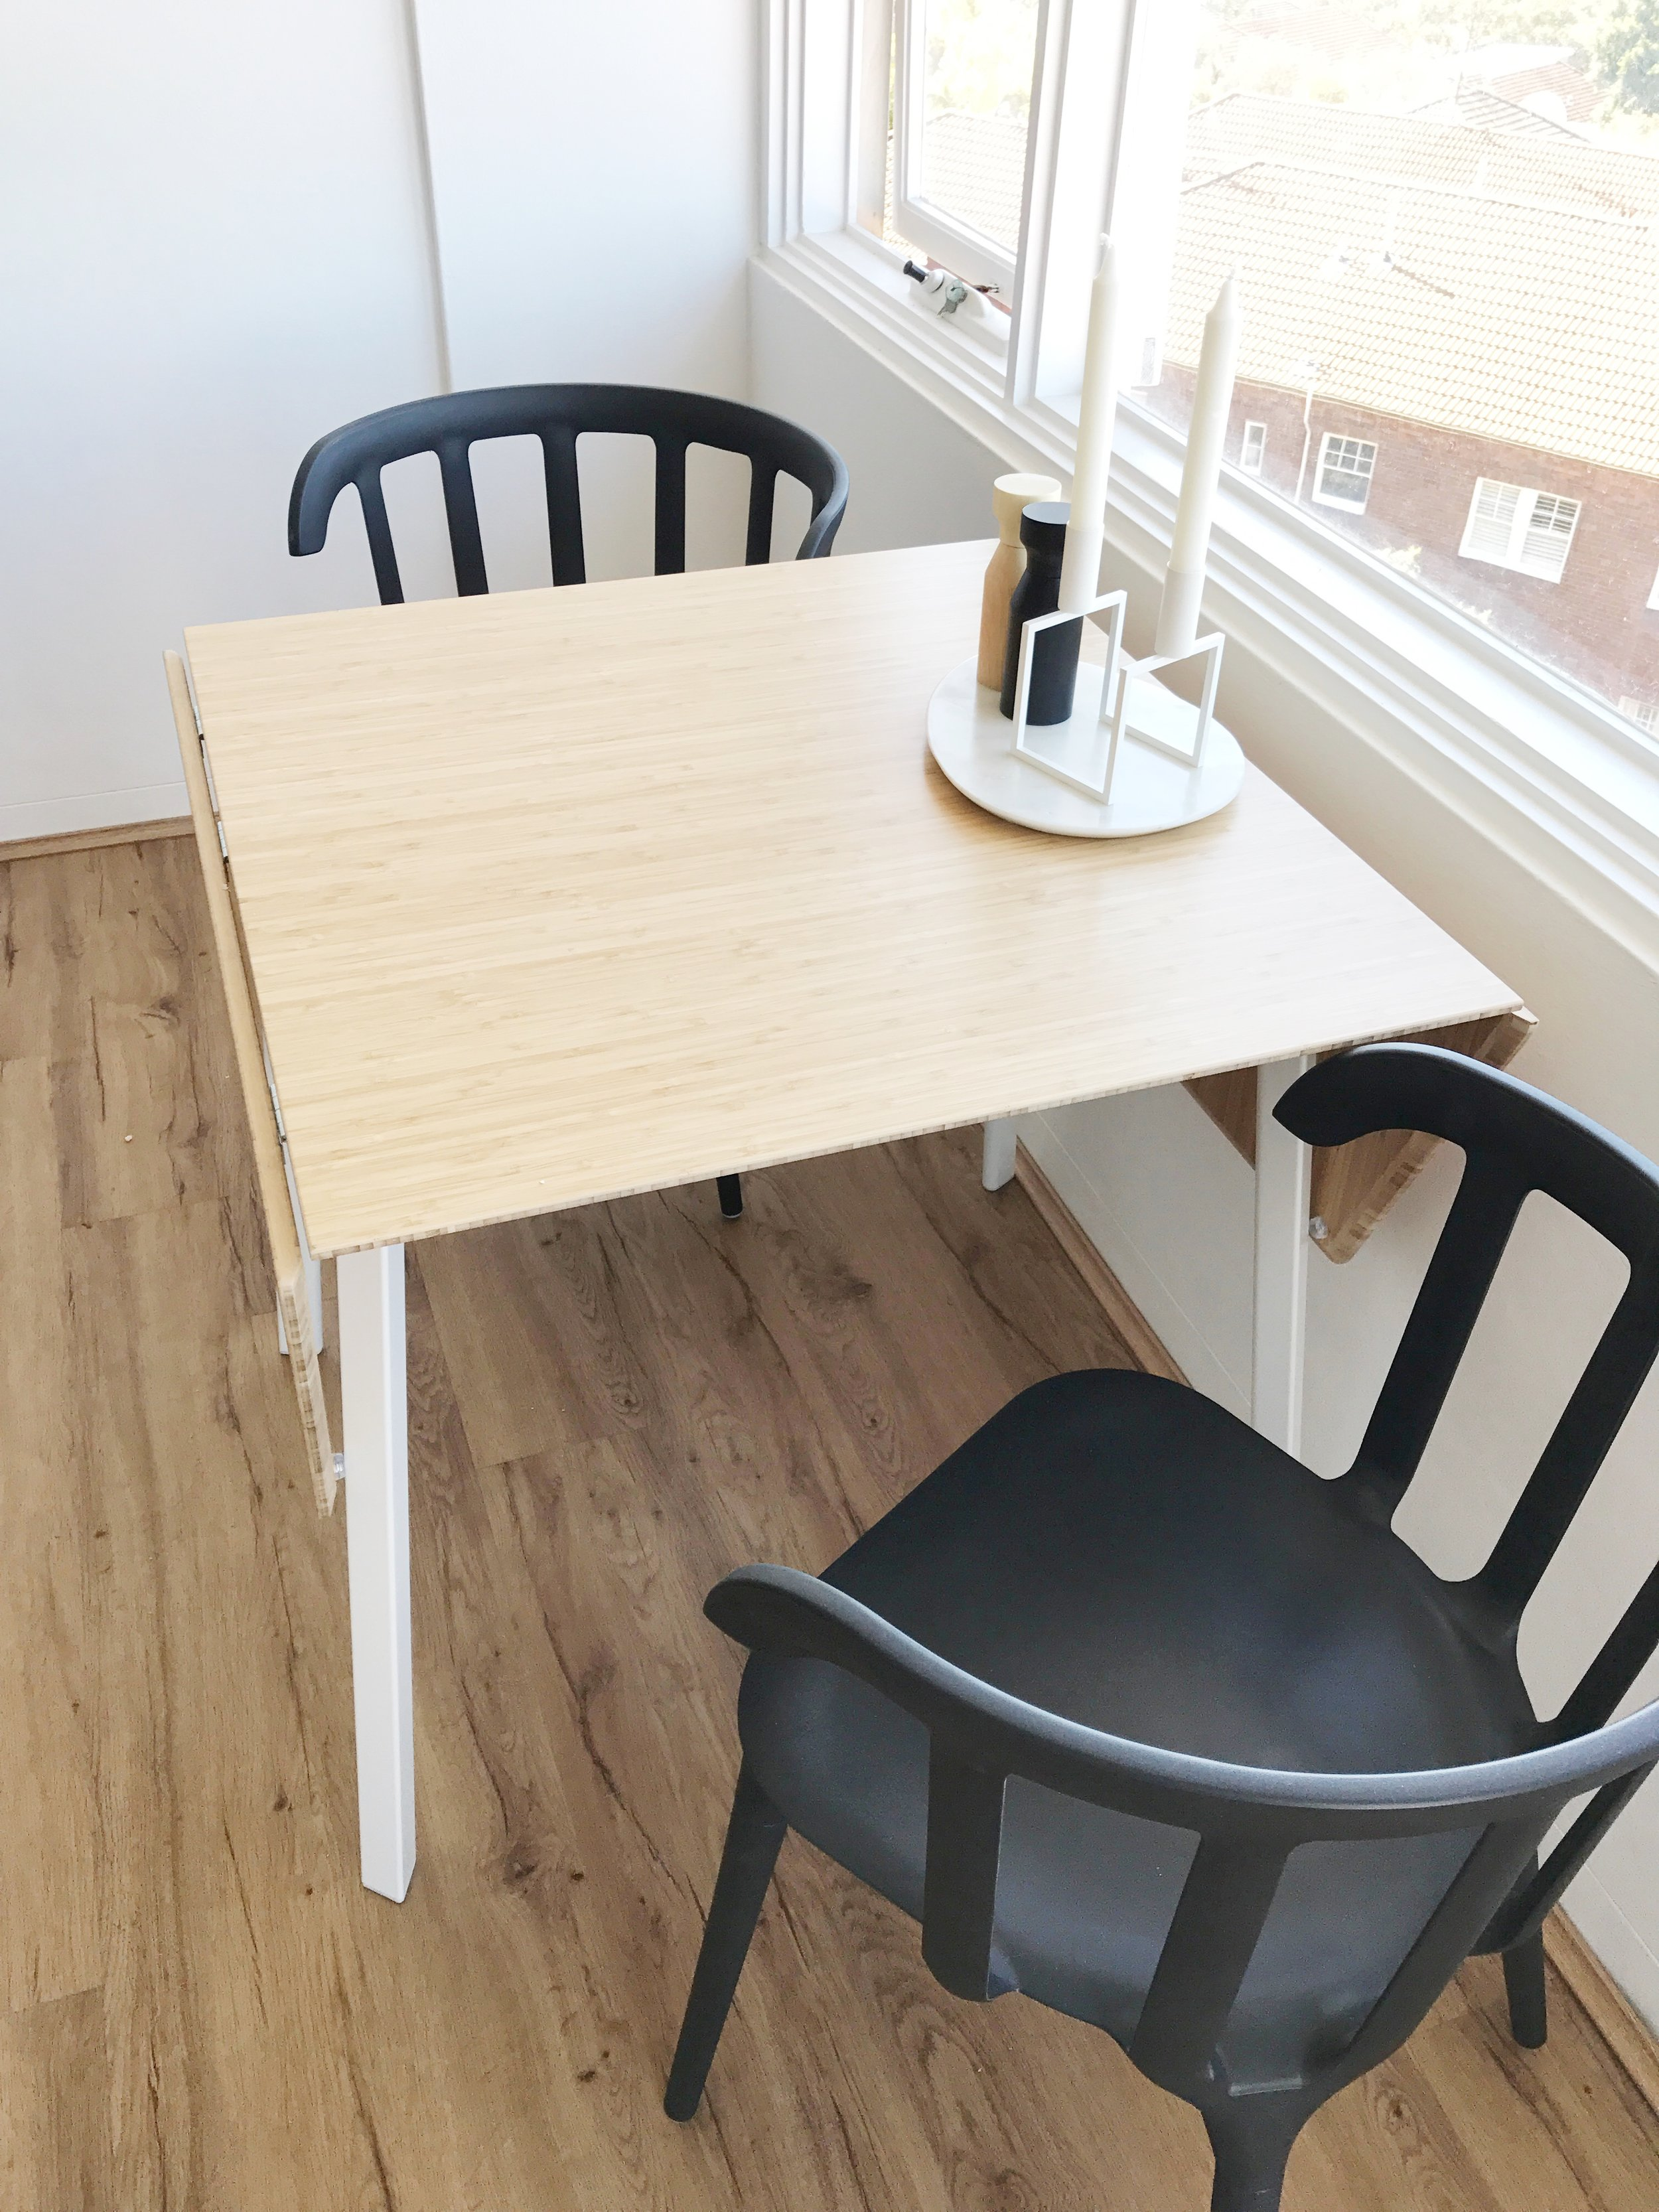 20 Ikea Products I Regularly Use In Client Projects The Little Design Corner